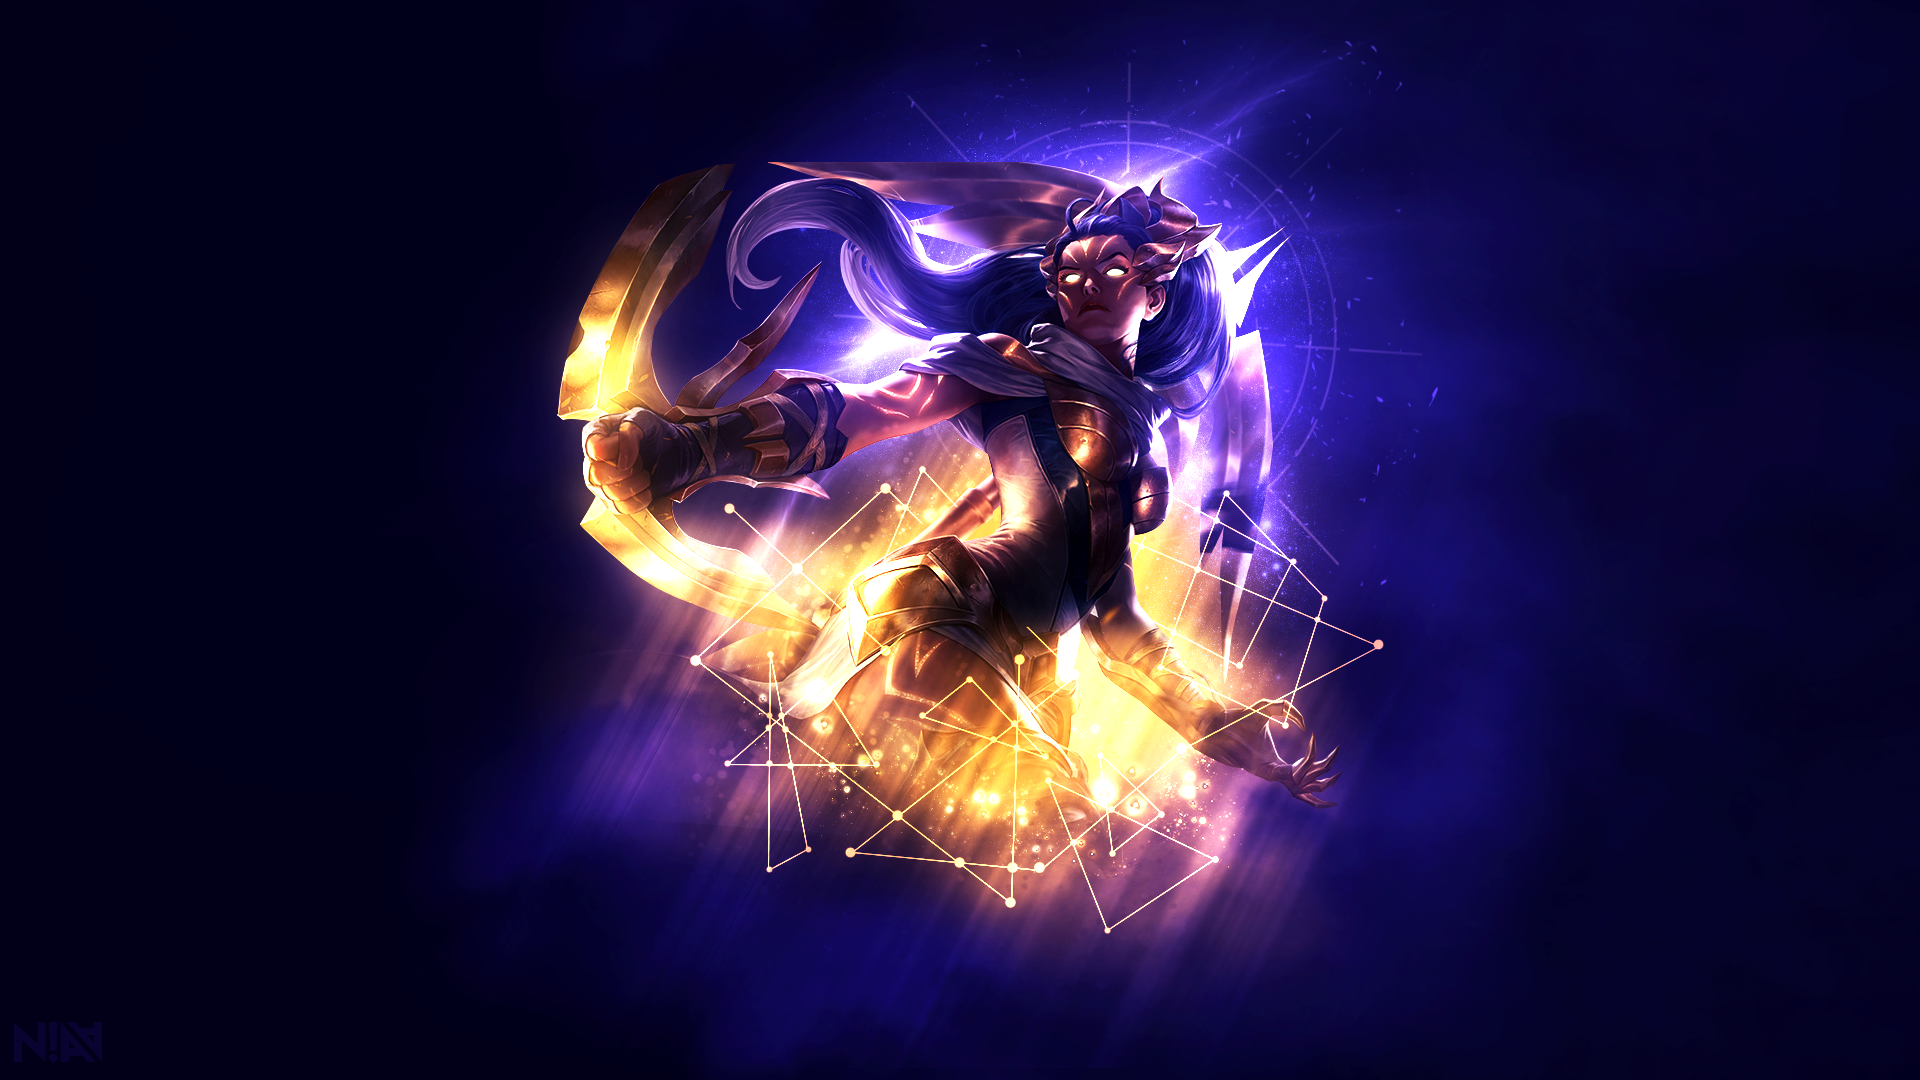 Arclight vayne wallpaper by aliceemad on deviantart for Deviantart wallpaper